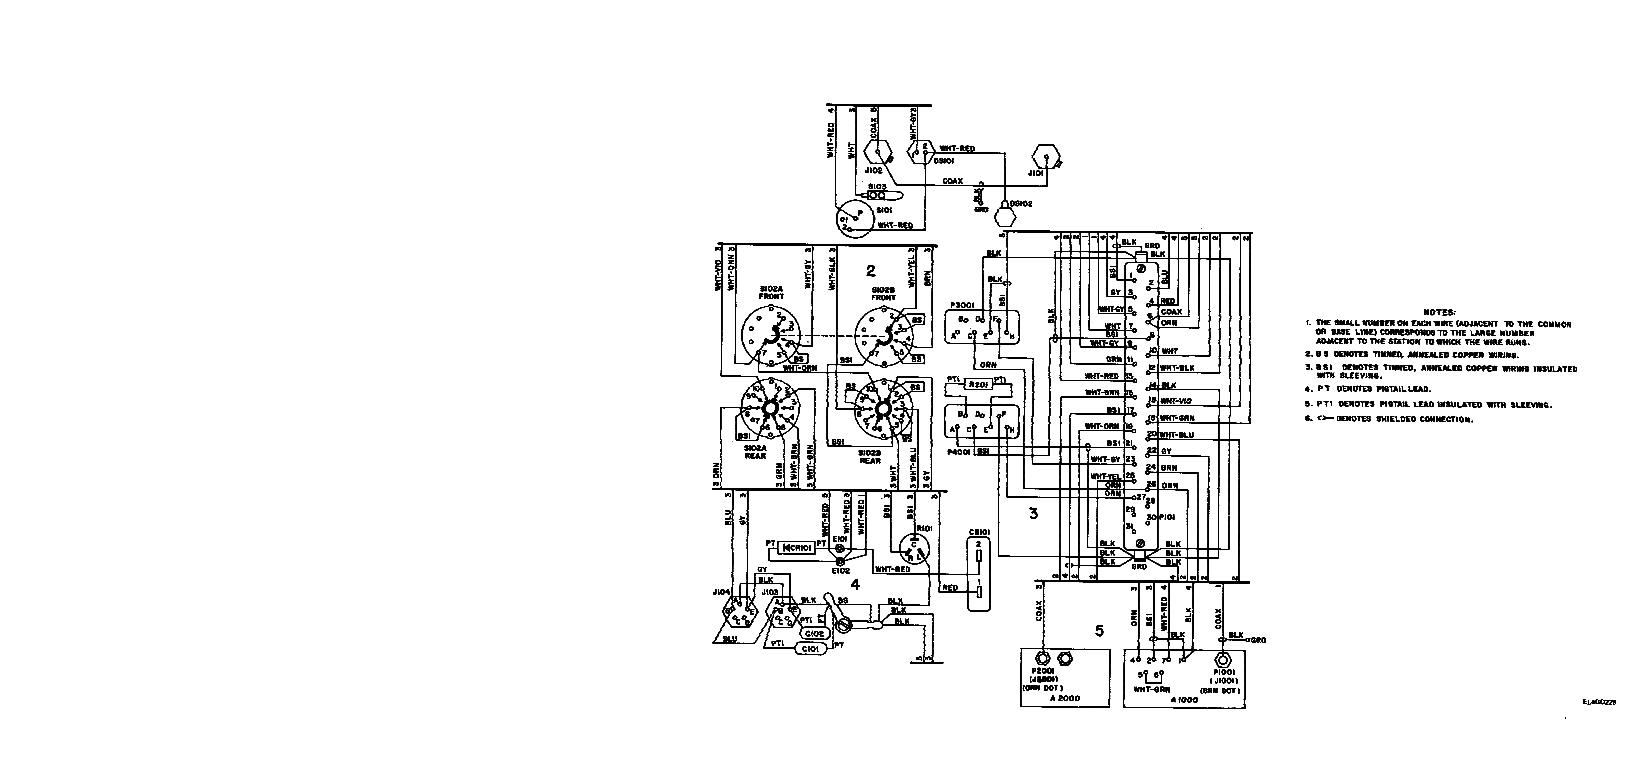 Fo 2 R 442 Vrc Front Panel Assembly A100 Wiring Diagram